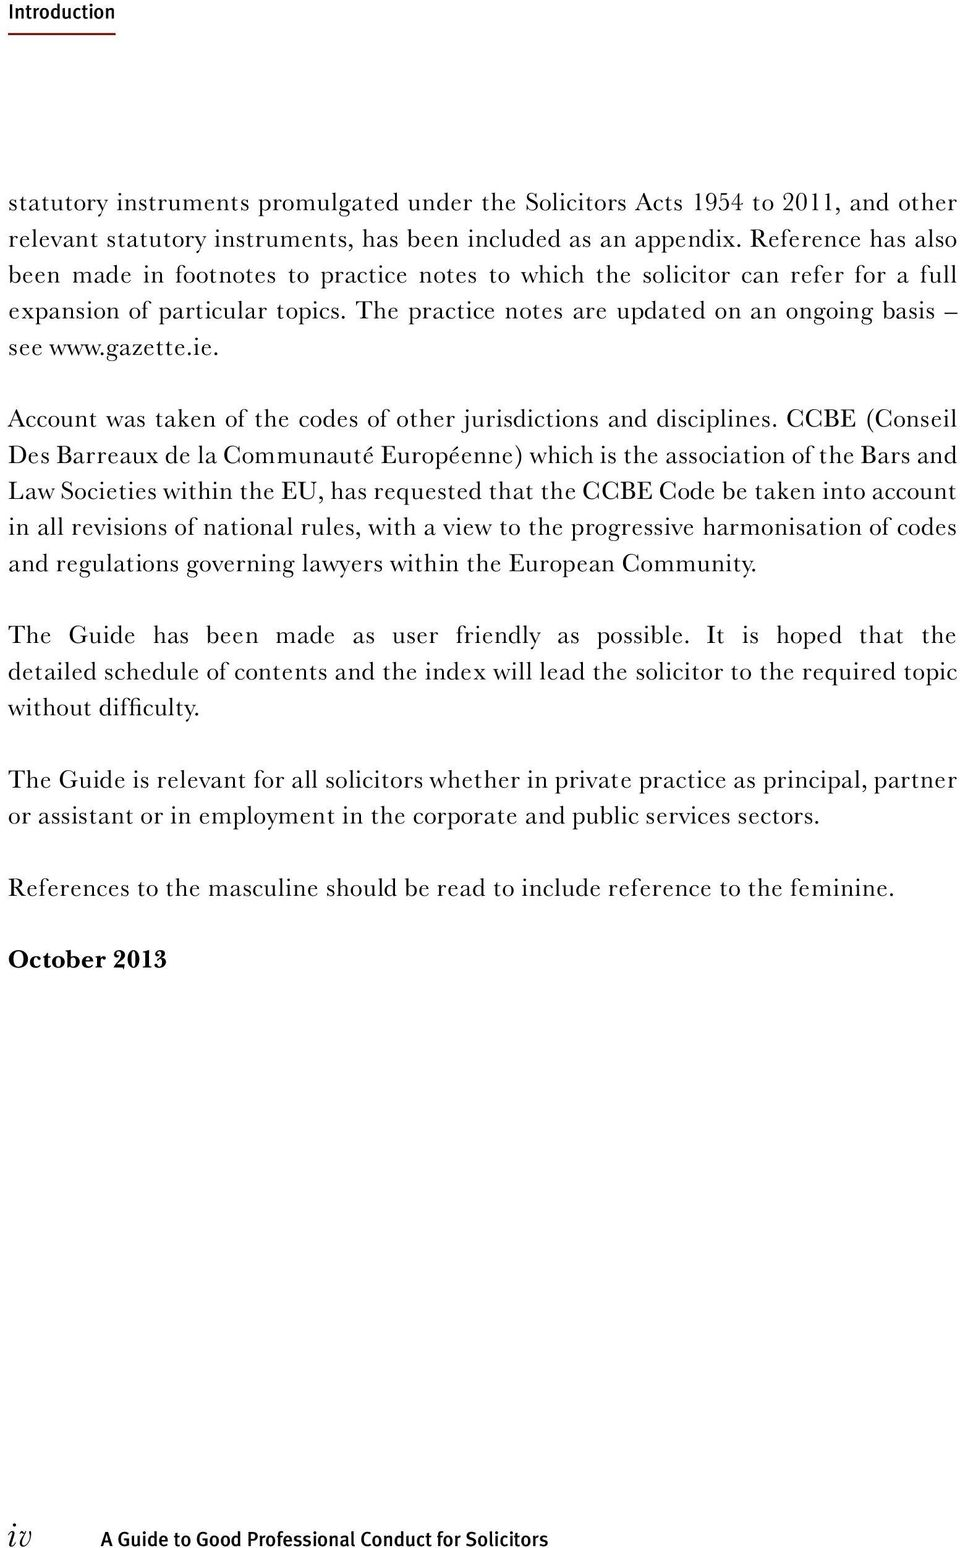 gazette.ie. Account was taken of the codes of other jurisdictions and disciplines.